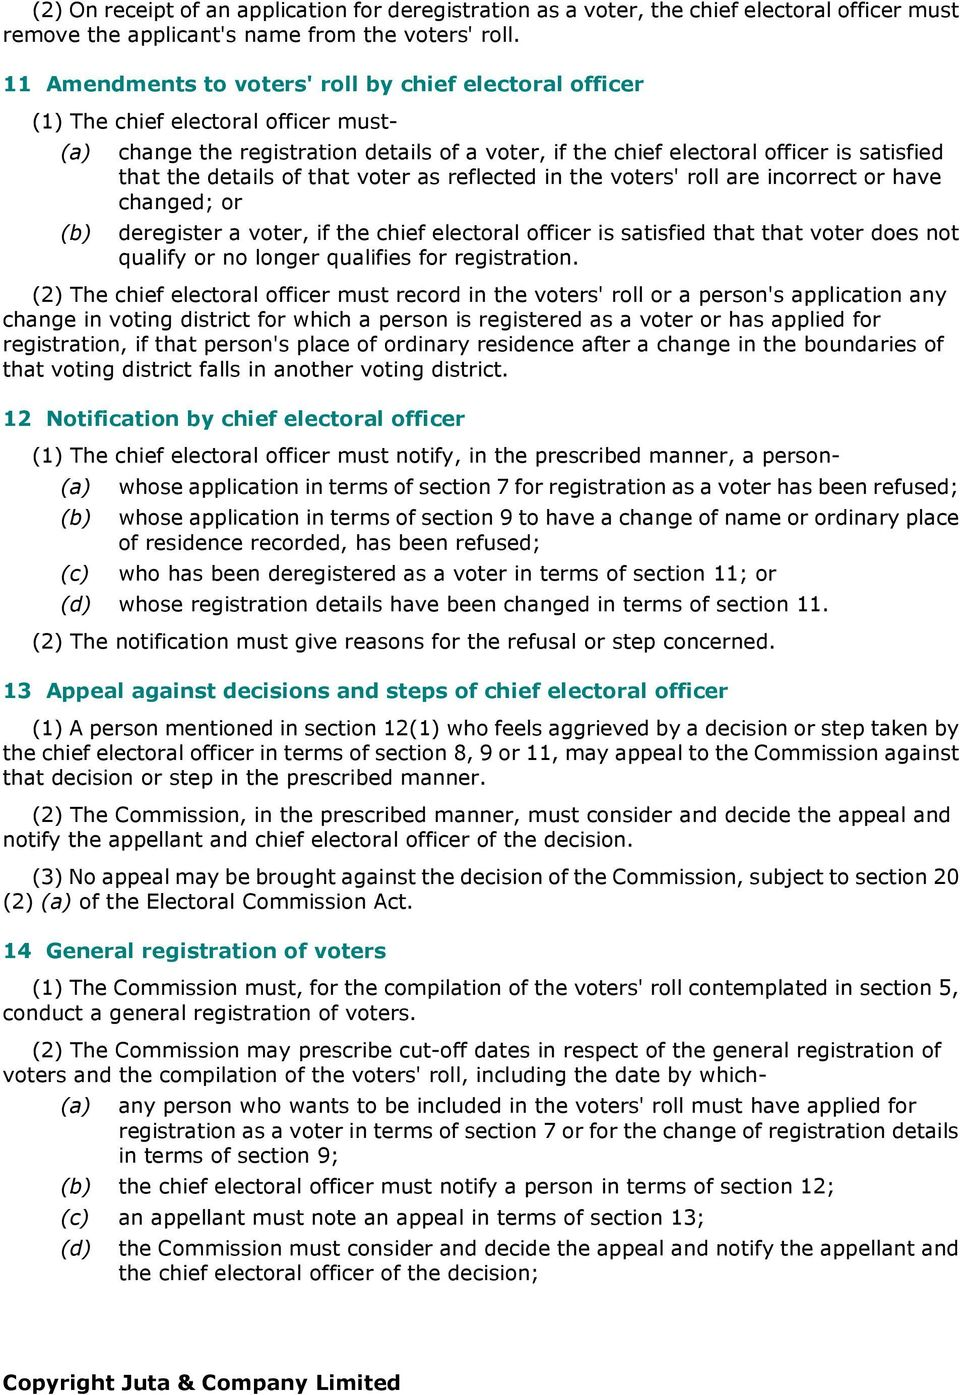 details of that voter as reflected in the voters' roll are incorrect or have changed; or (b) deregister a voter, if the chief electoral officer is satisfied that that voter does not qualify or no